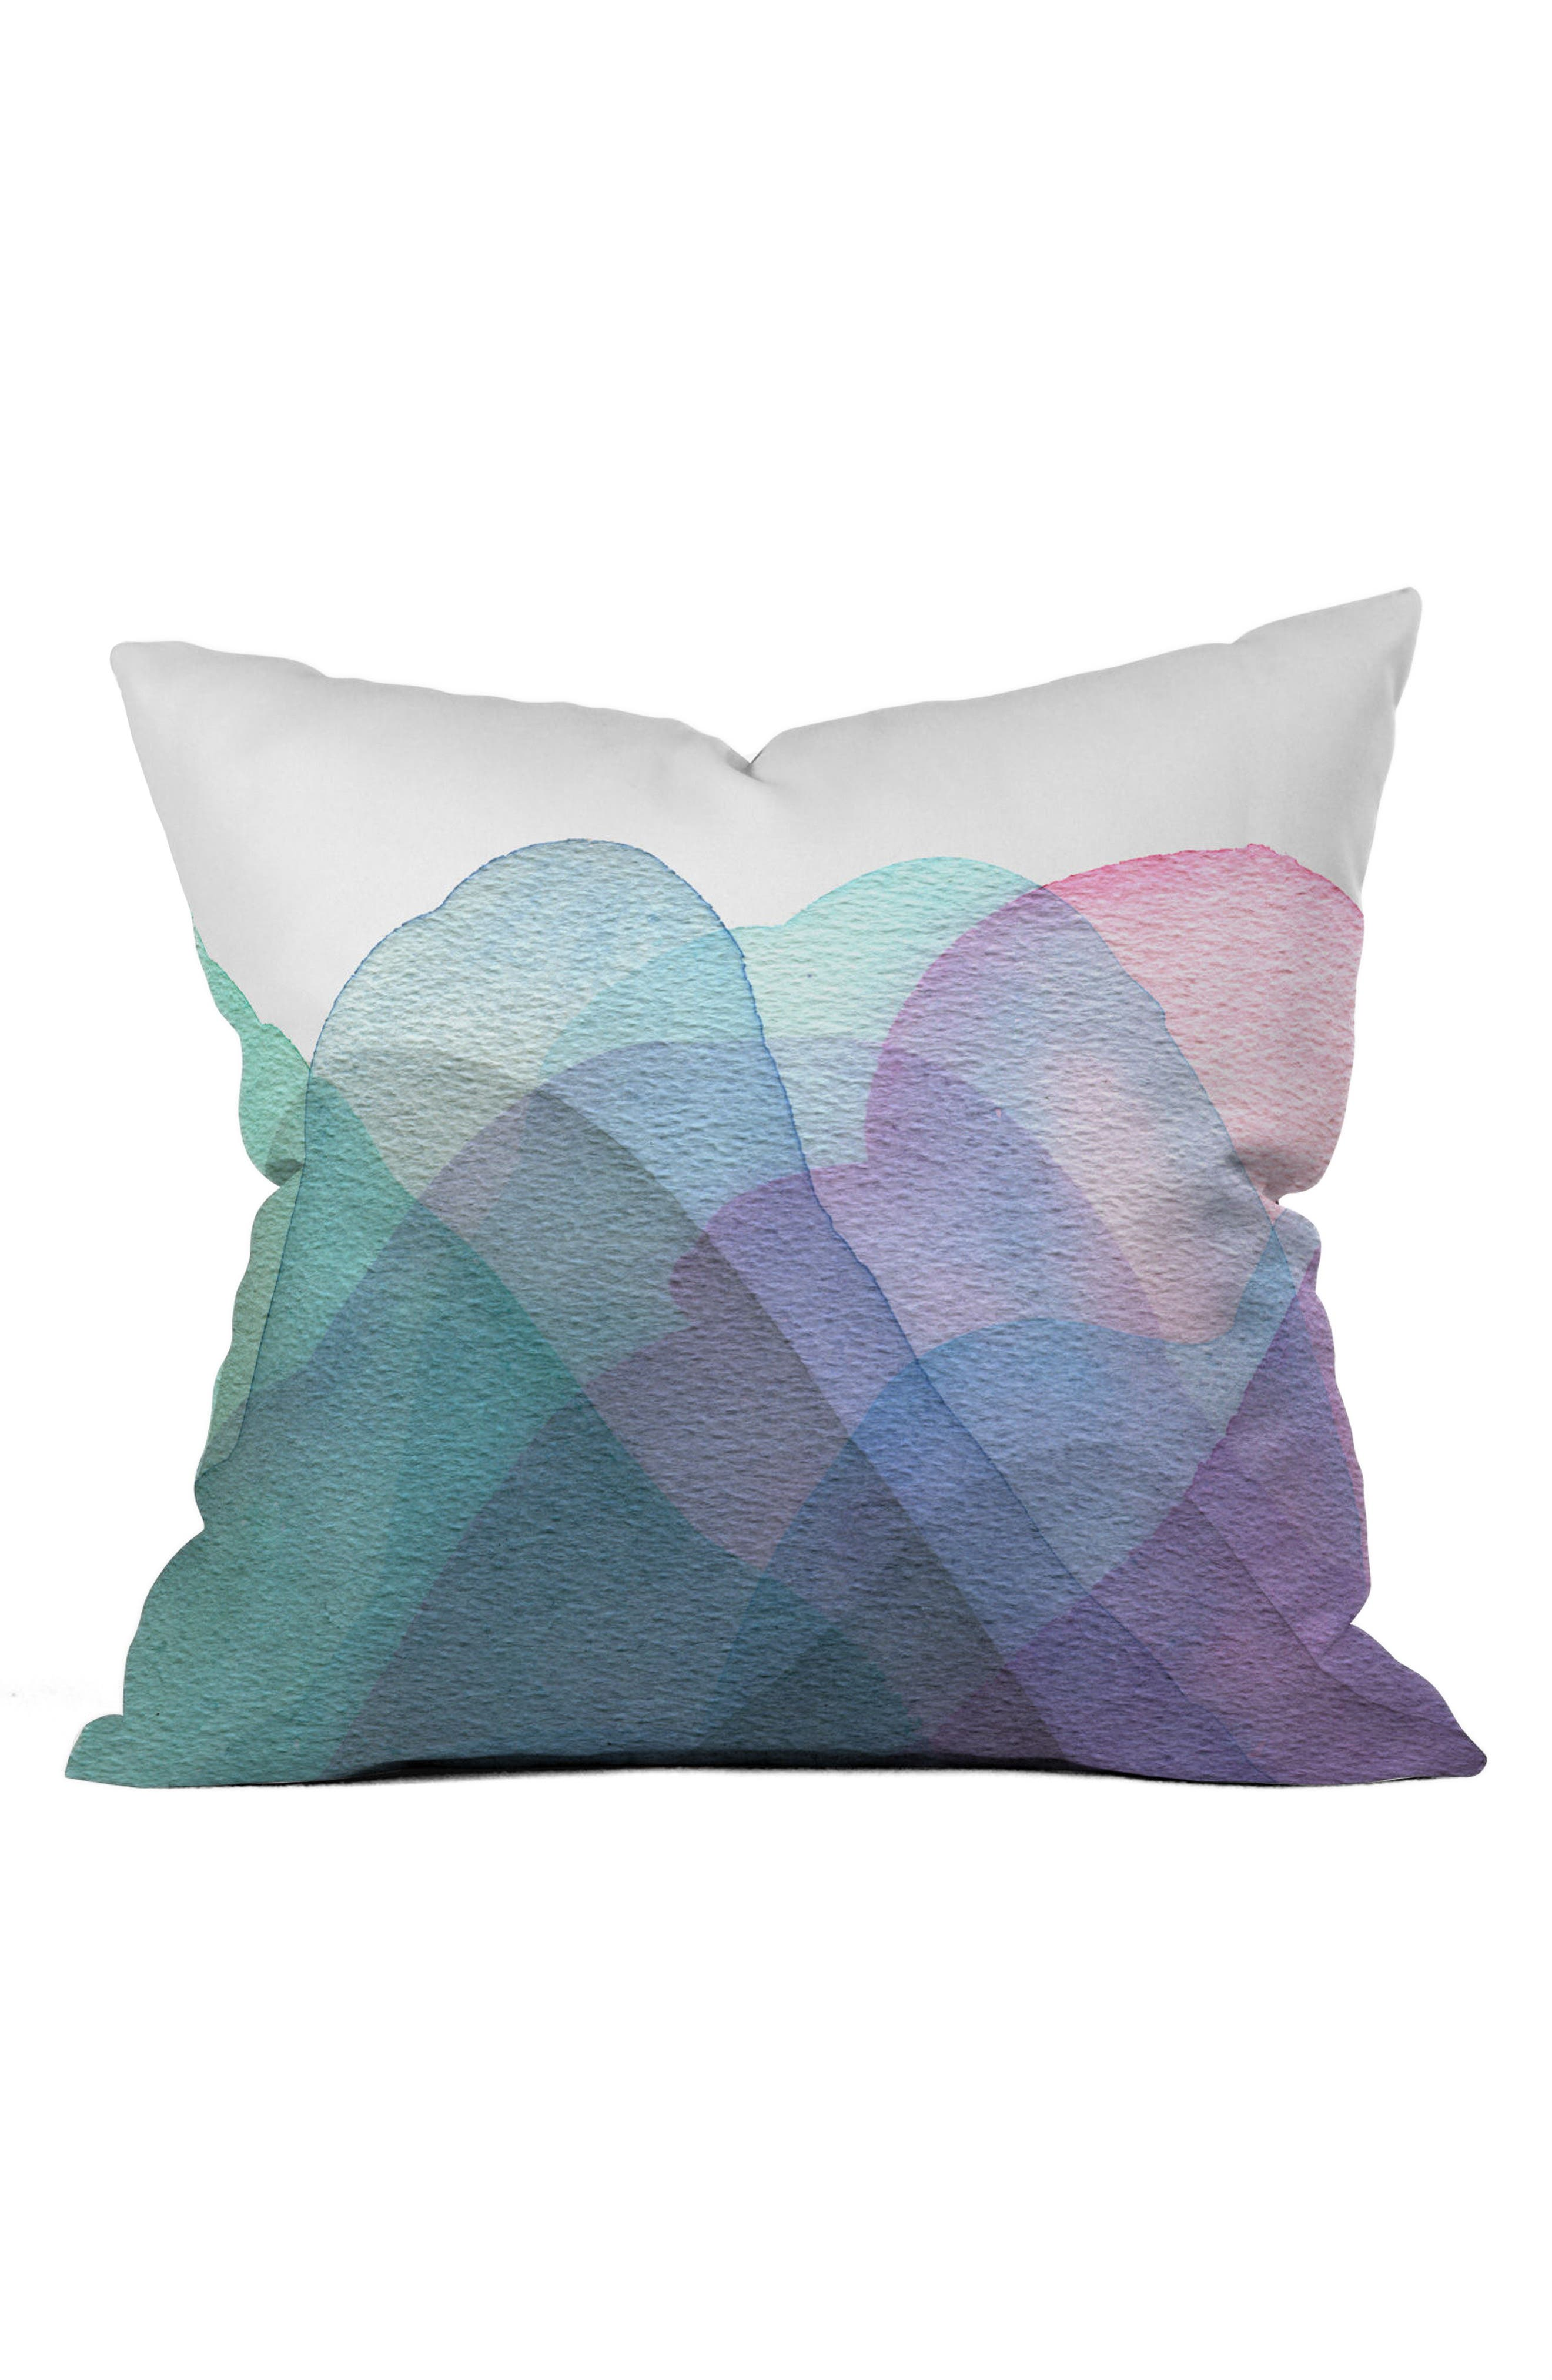 DENY Designs Layers Pillow